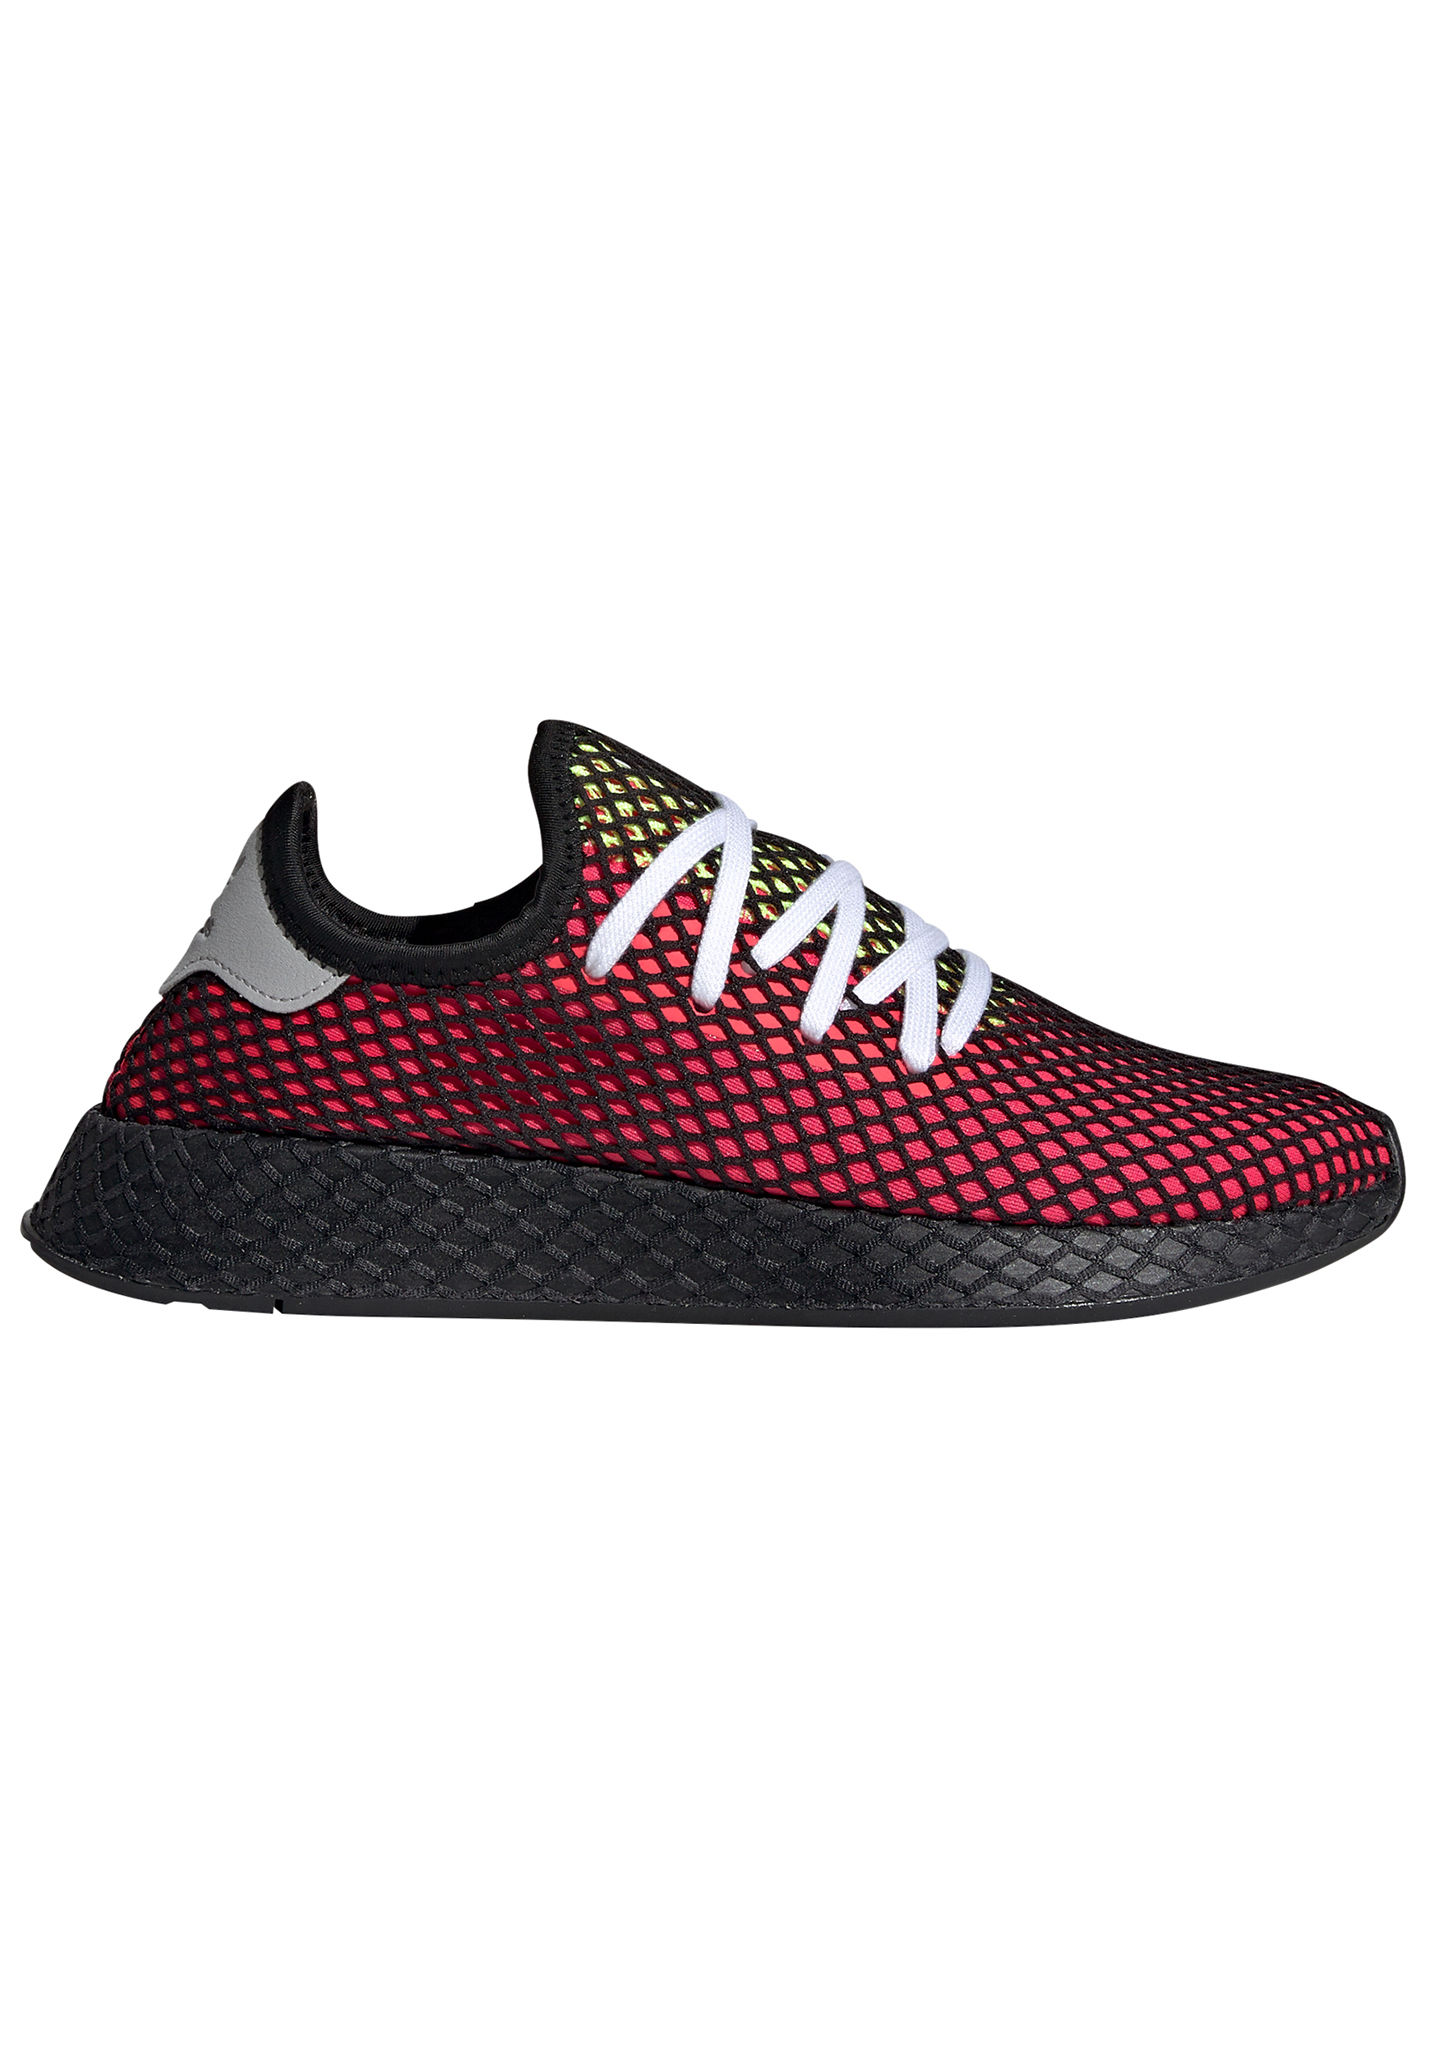 sports shoes e933a 4b445 ADIDAS ORIGINALS Deerupt Runner - Sneakers for Men - Red - Planet Sports